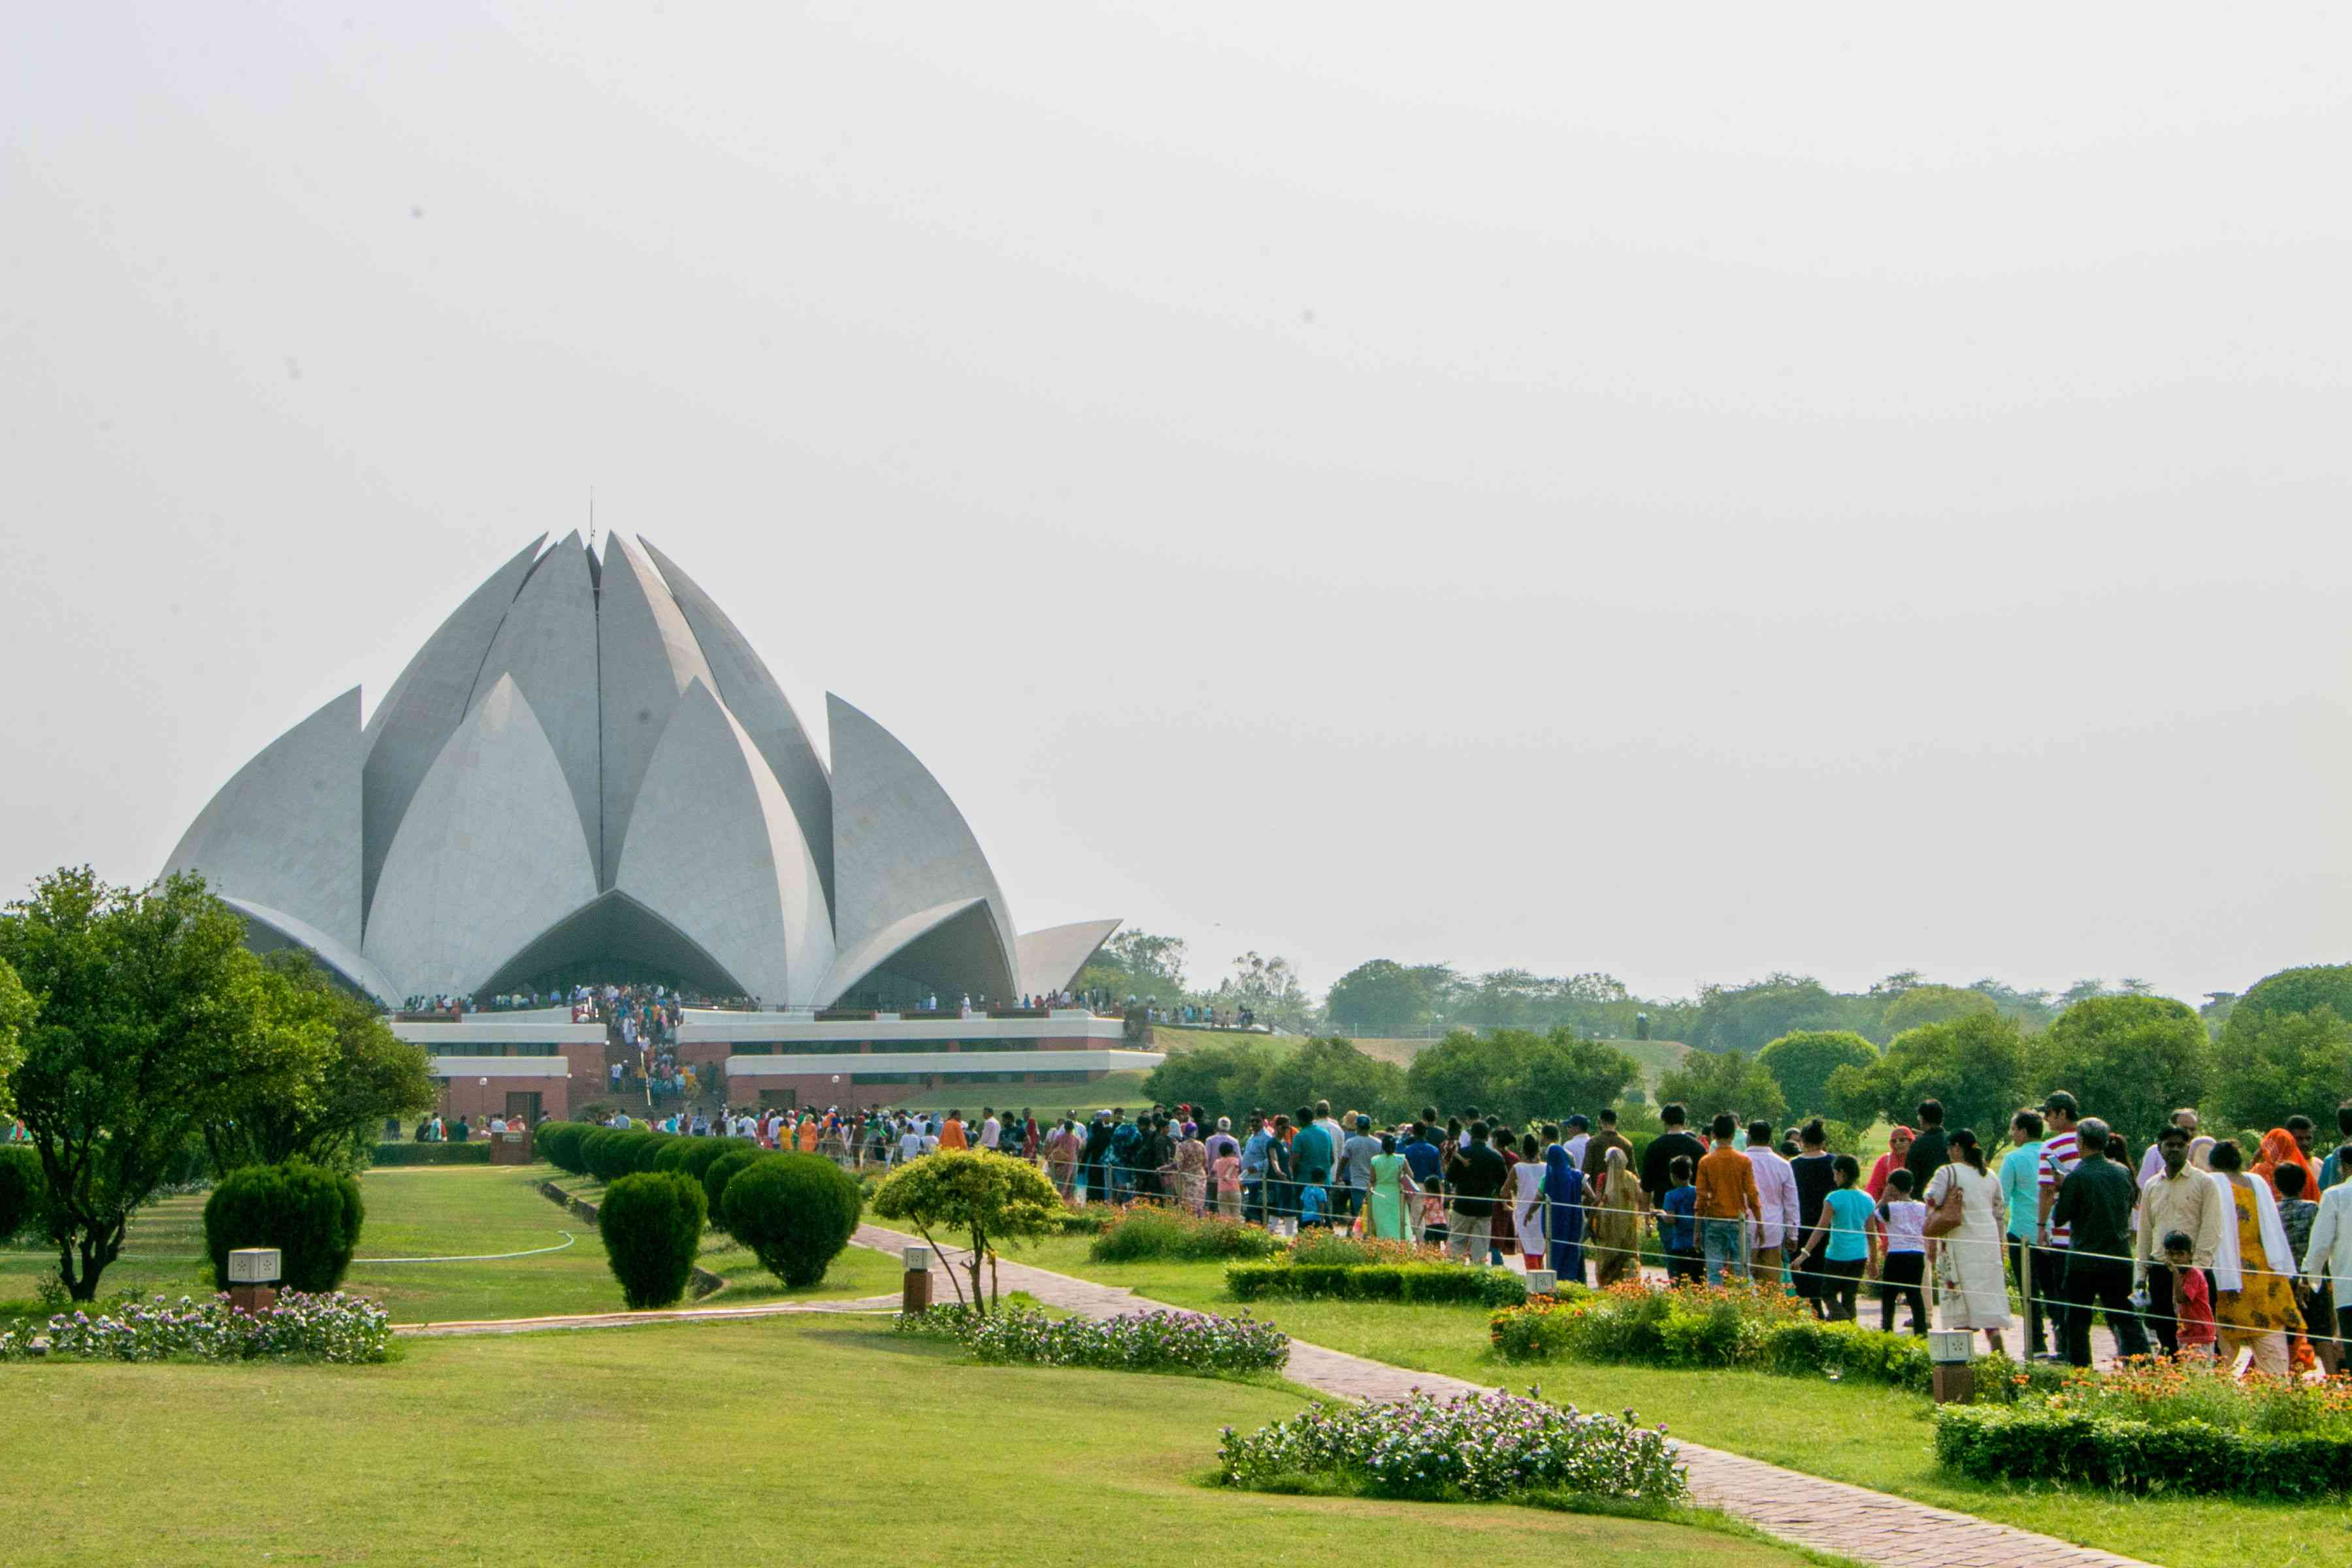 Line waiting to enter the Lotus Temple